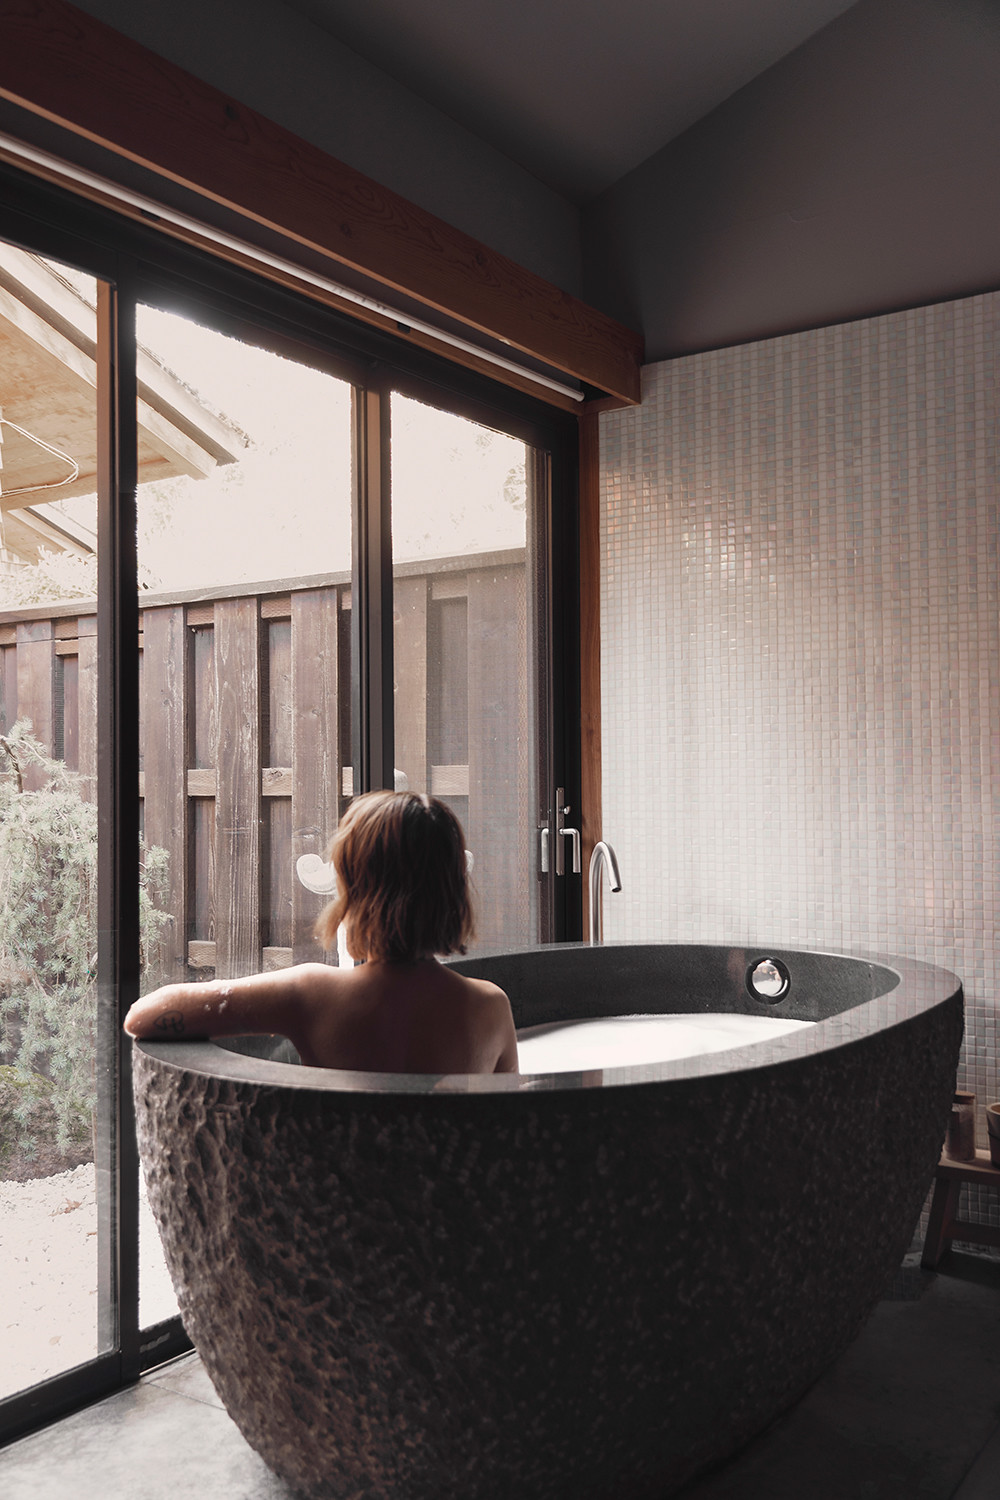 08gaigehouse_ryokan_sonoma_travel_bath